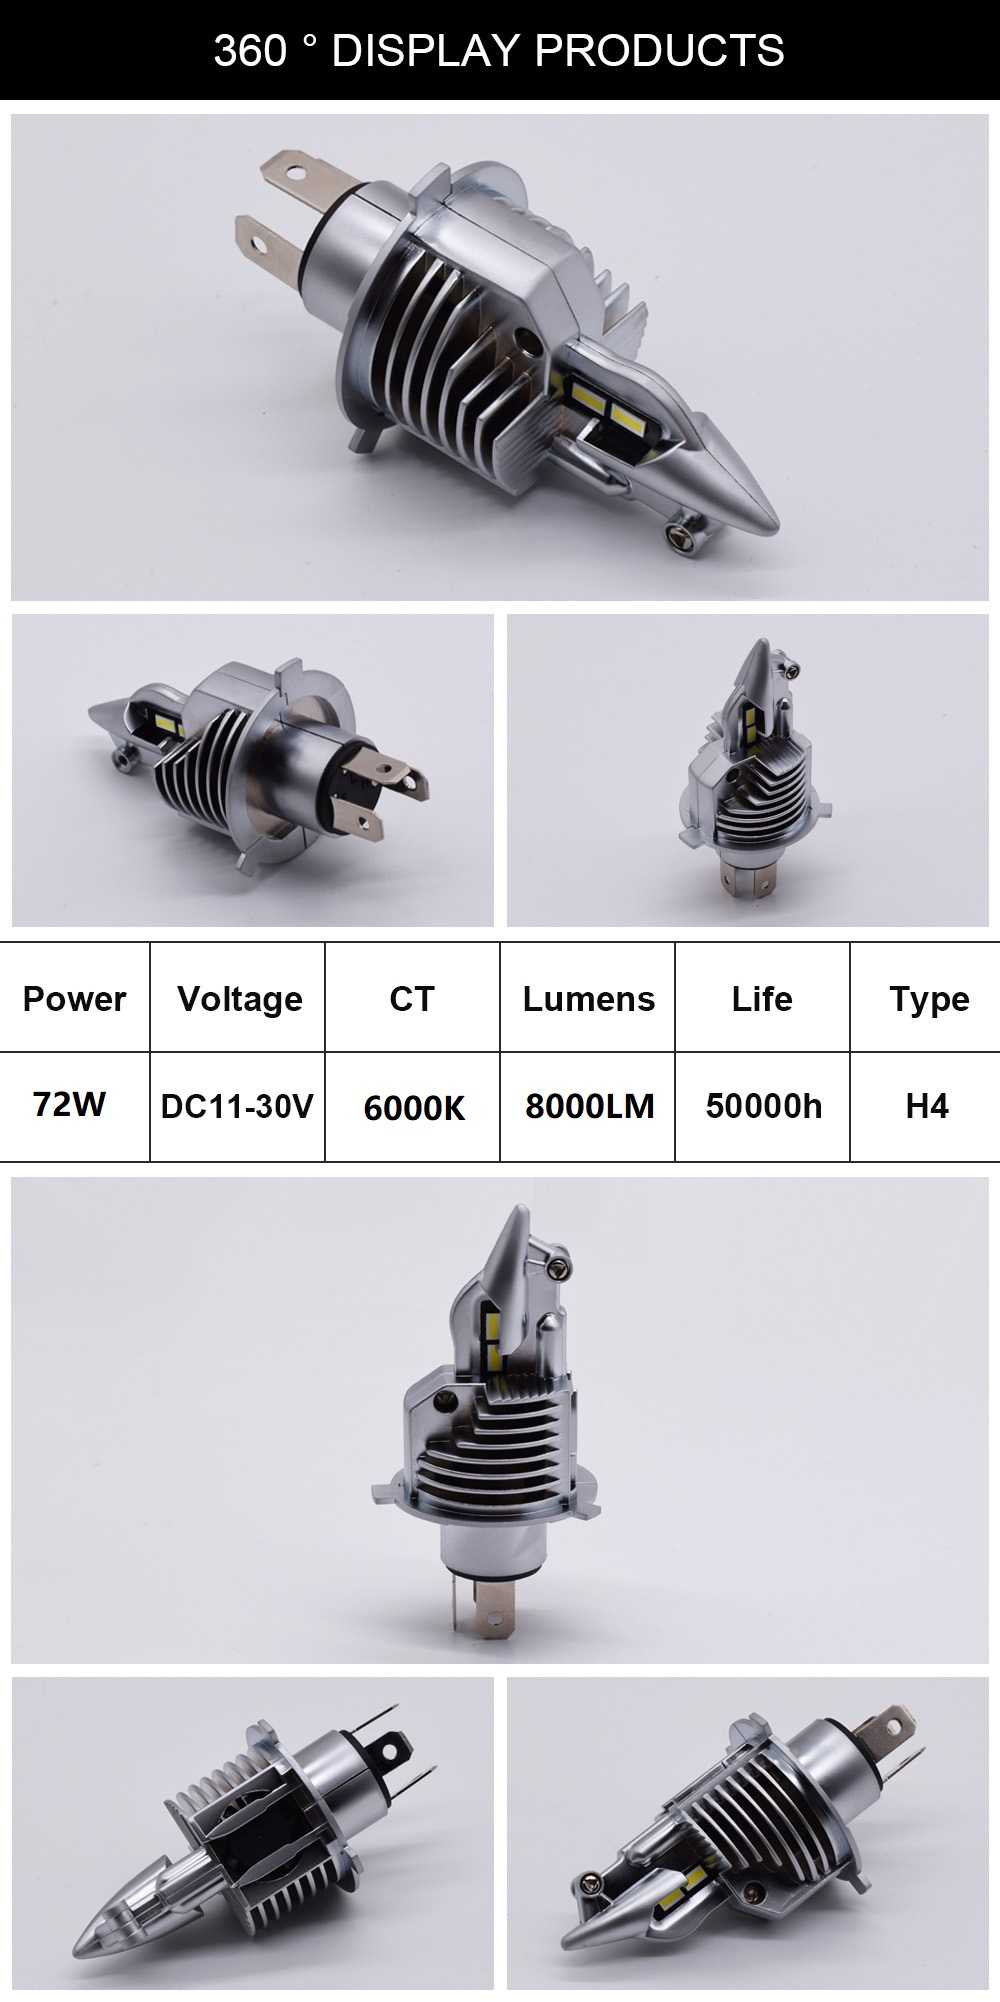 Fighter H4 Led Bulbs Car/motorcycle Headlight 72W 12V 24V 6000K Super Led H4 Car headlight Bulbs lampada Led H4 8000LM